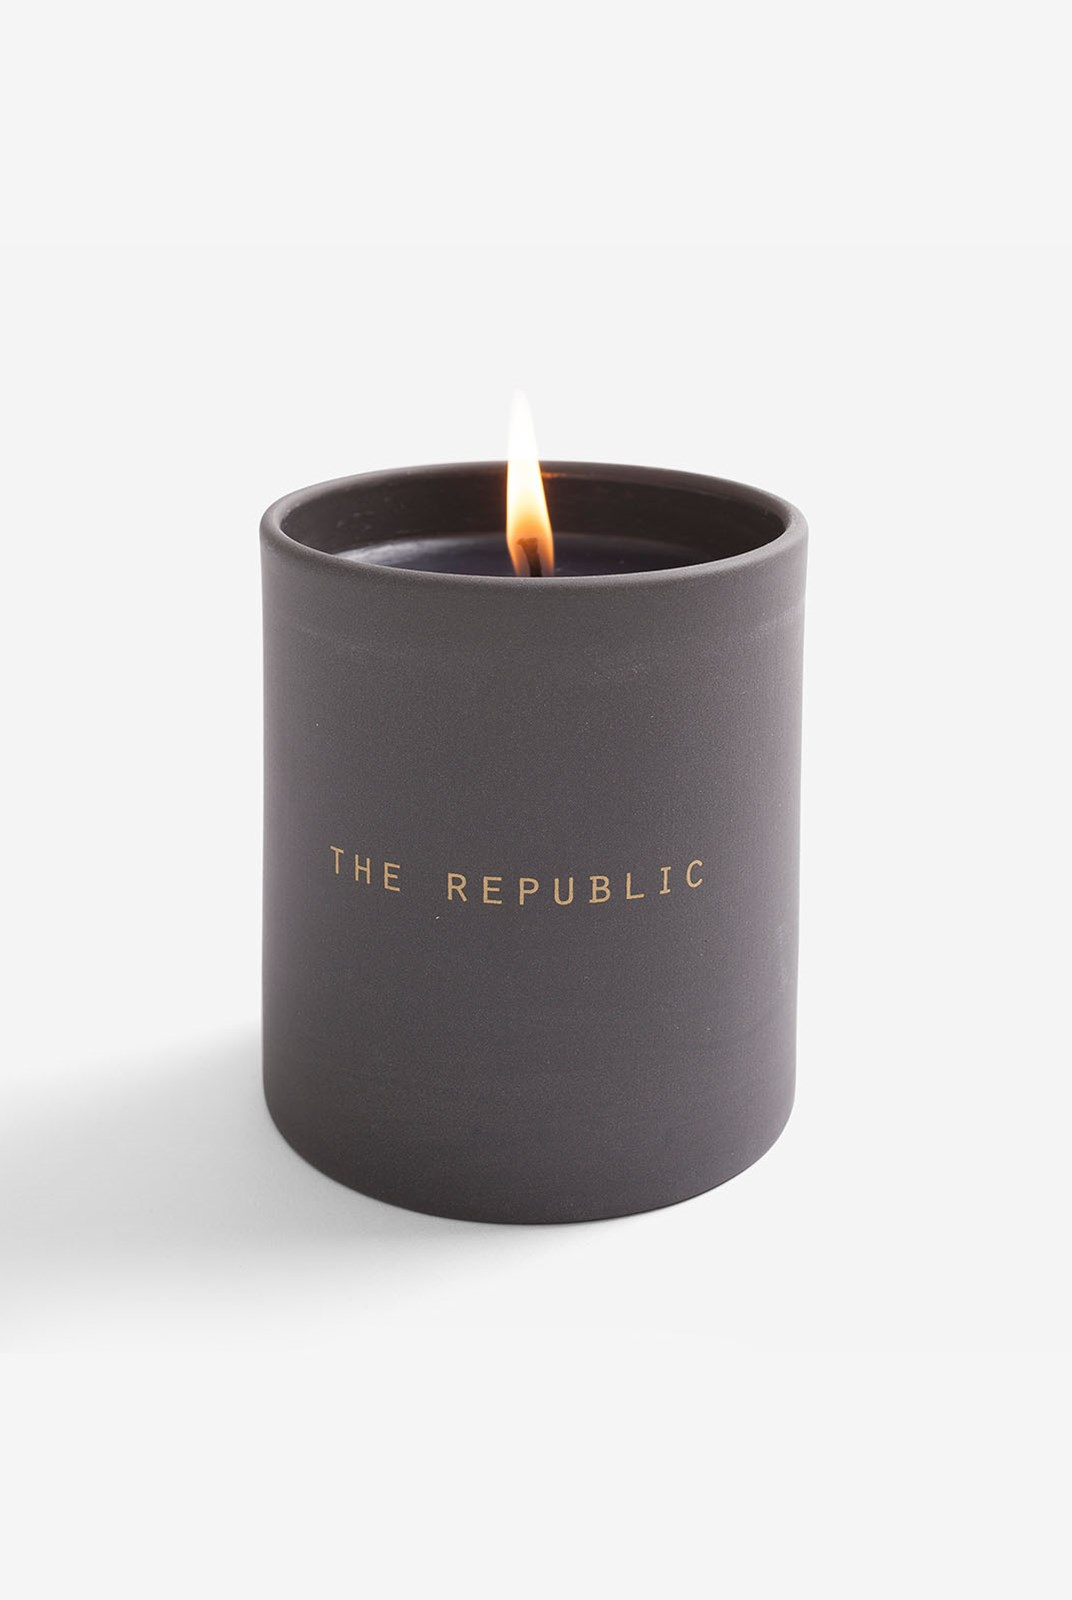 The School Of Life - Utopia Candle - The Republic